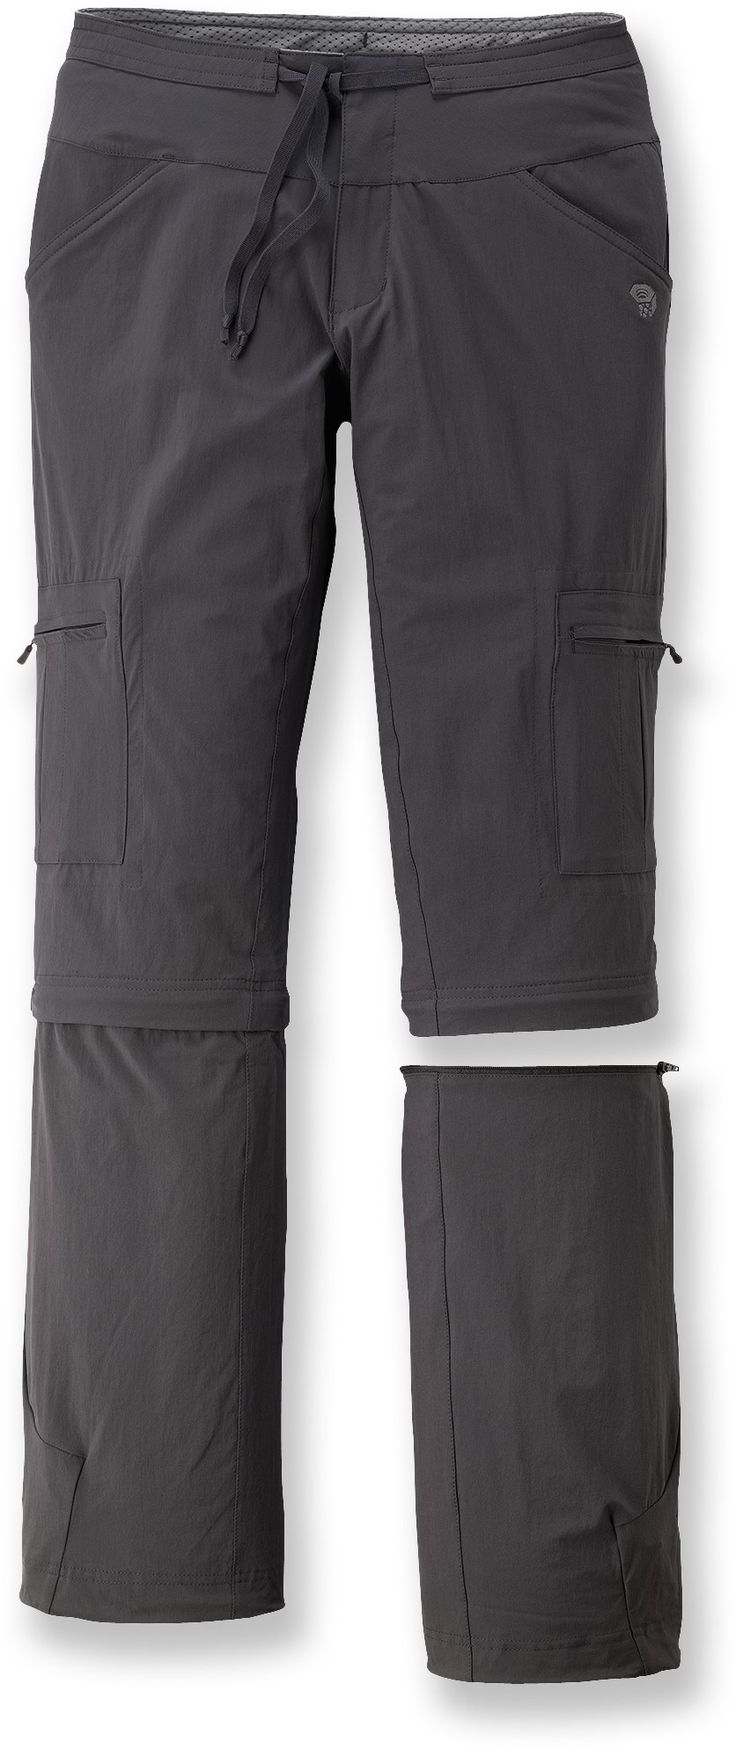 Mountain Hardwear Yuma Convertible Pants - i love convertible hiking pants, especially capris.